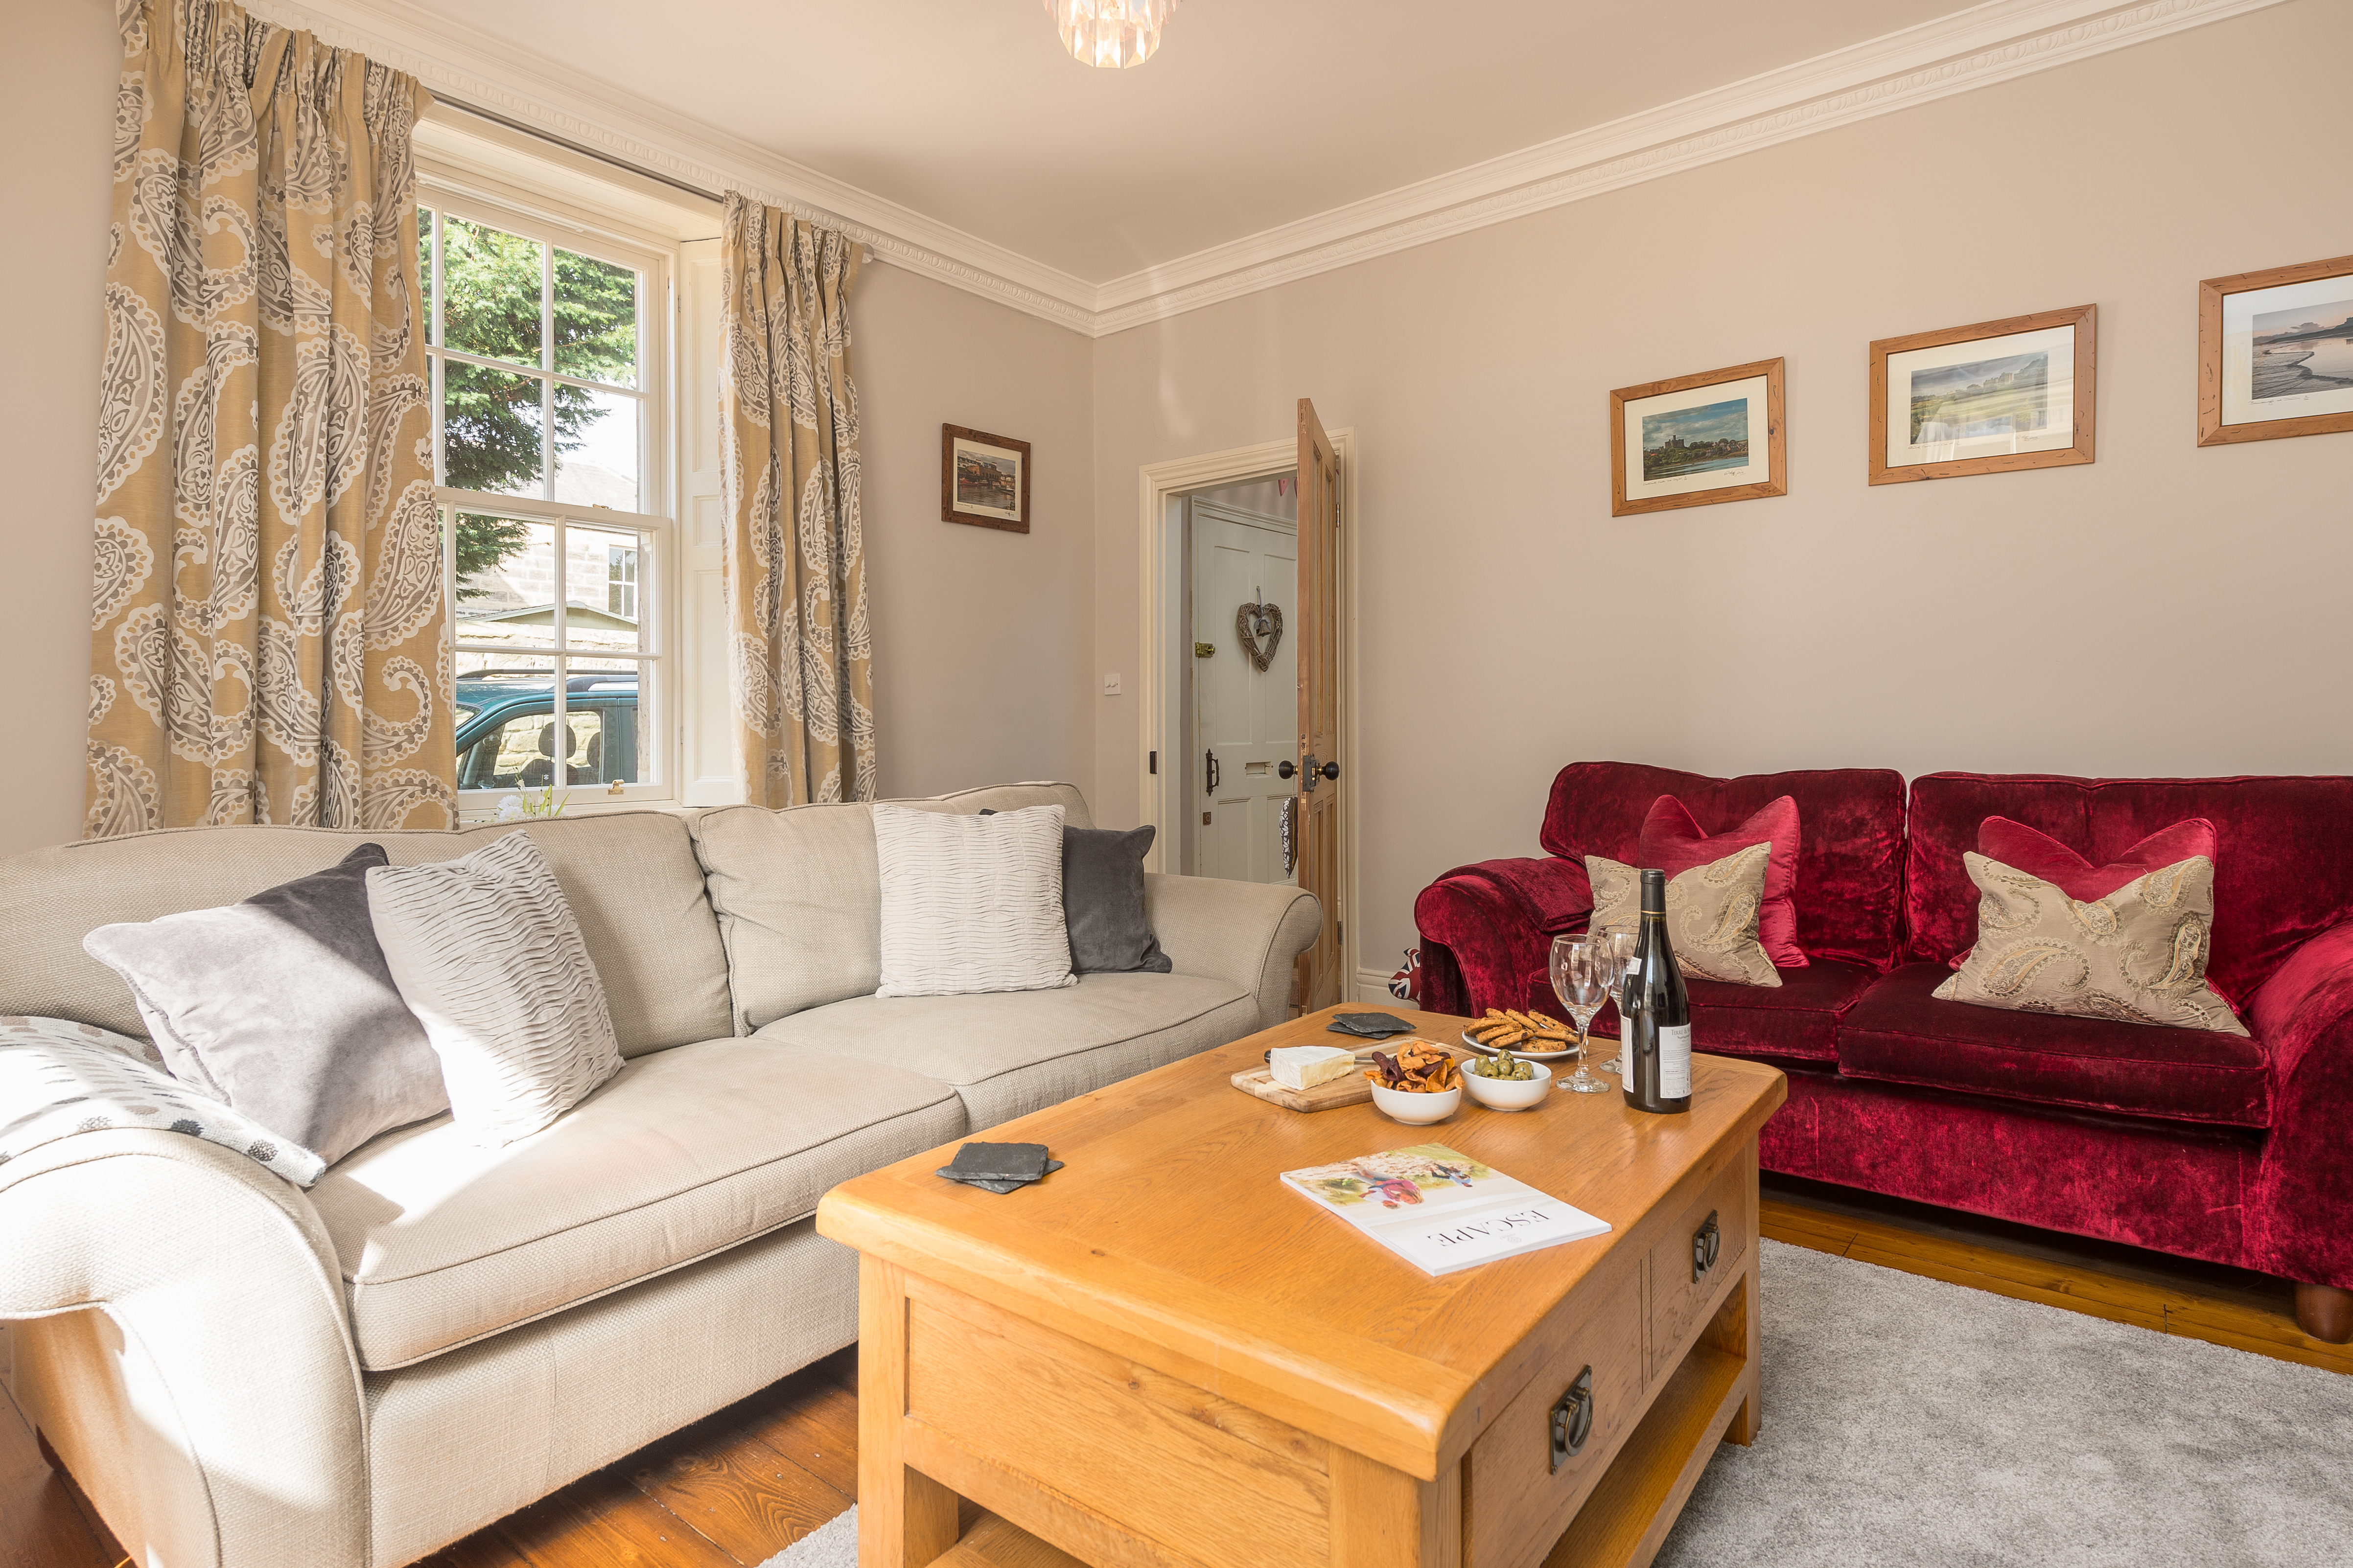 gorgeous places to stay in Alnwick, boutique hotels b&b alnwick northumberland, boutique accommodation Alnwick Northumberland